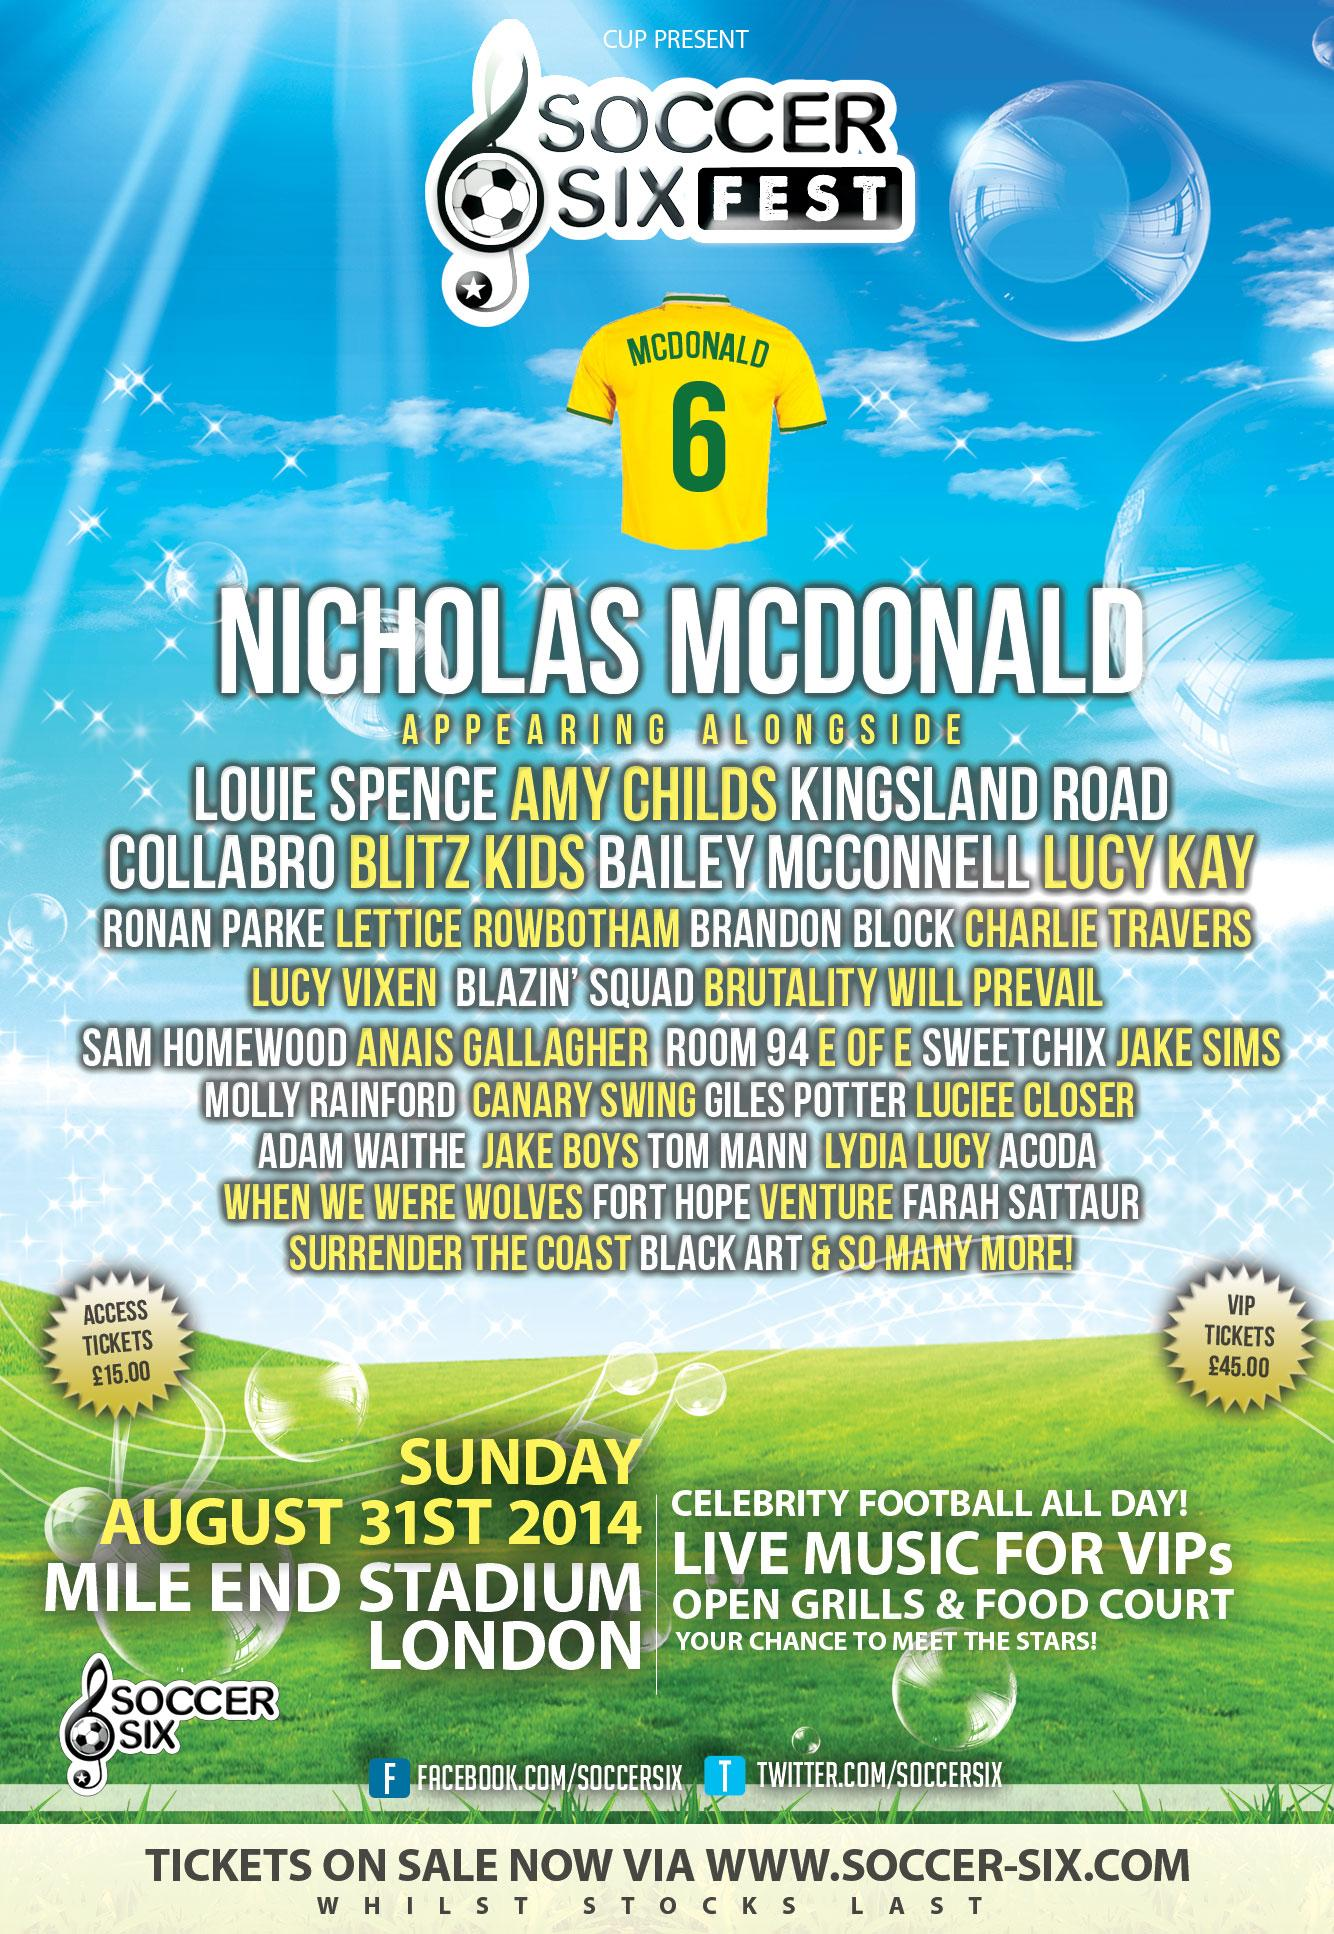 RT @SoccerSix: WHO'S EXCITED to see @nickymcdonald1 at #SoccerSixFest? http://t.co/3EFtLsZB24 RT! http://t.co/yR2BxdUxpv